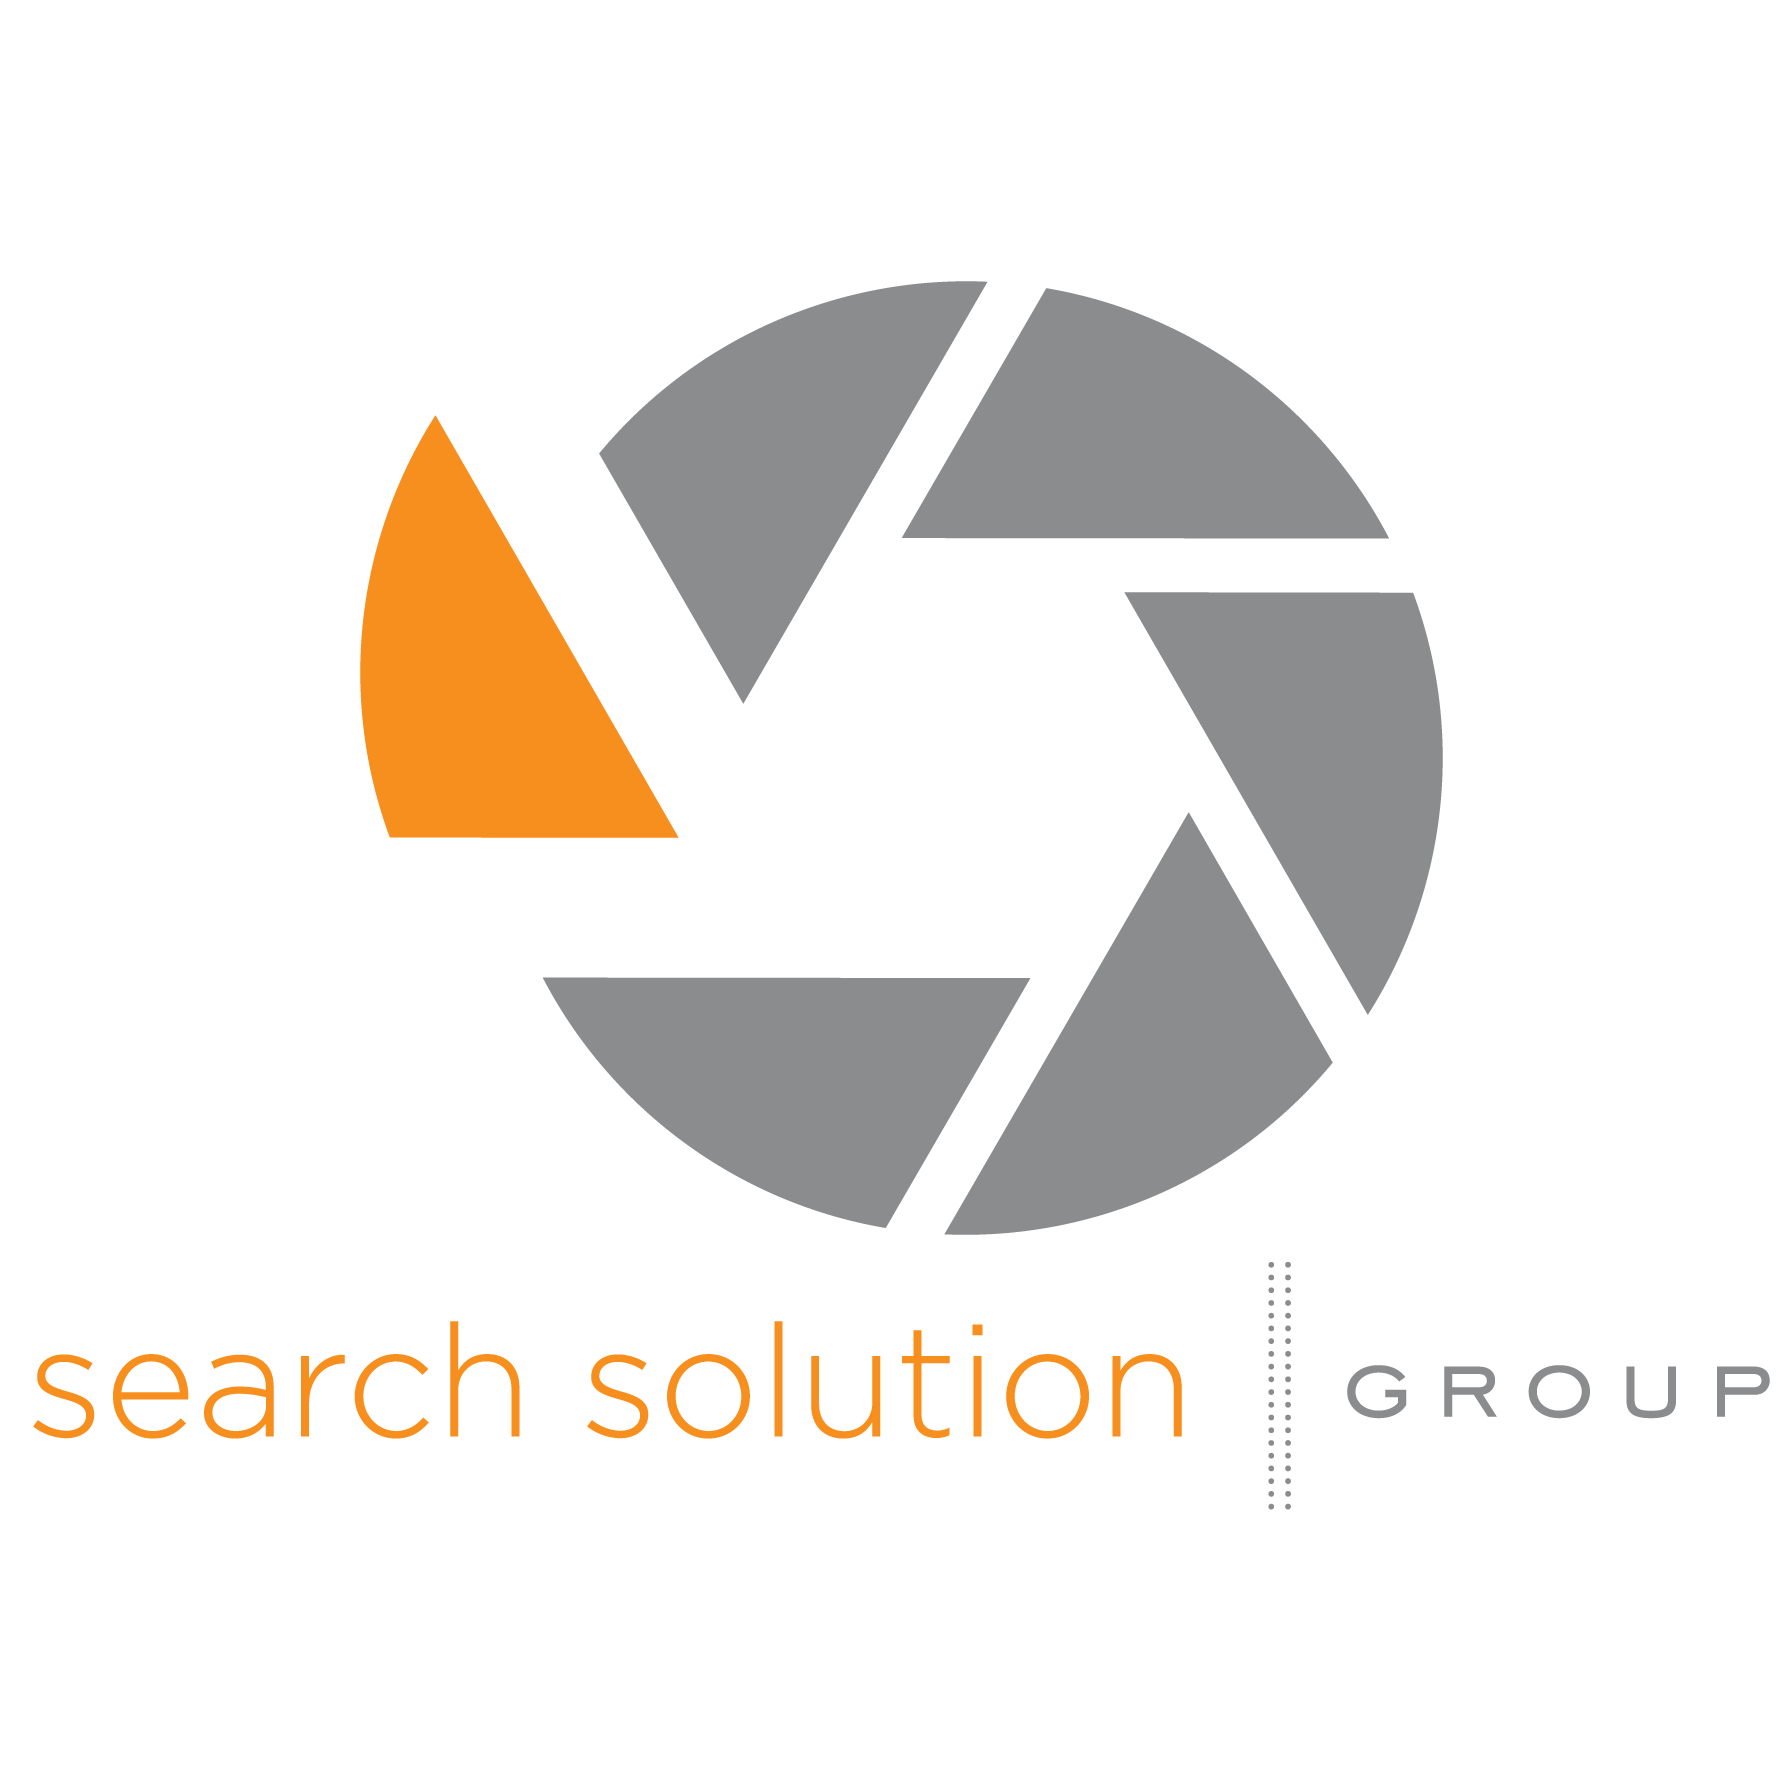 Search Solution Group image 4